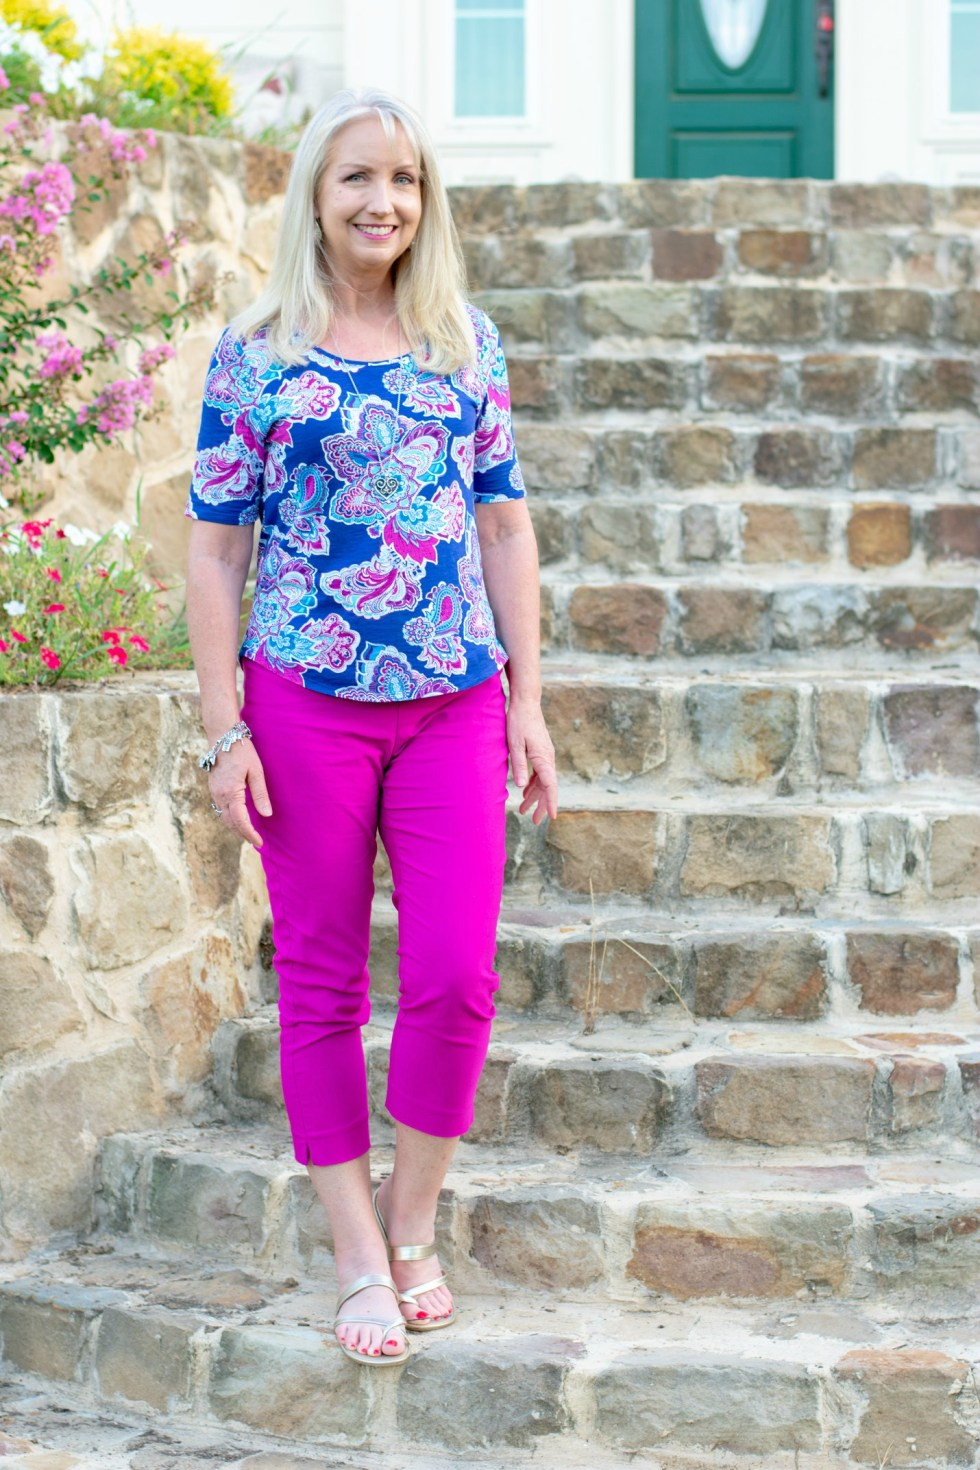 Crops and tops from Chico's 4